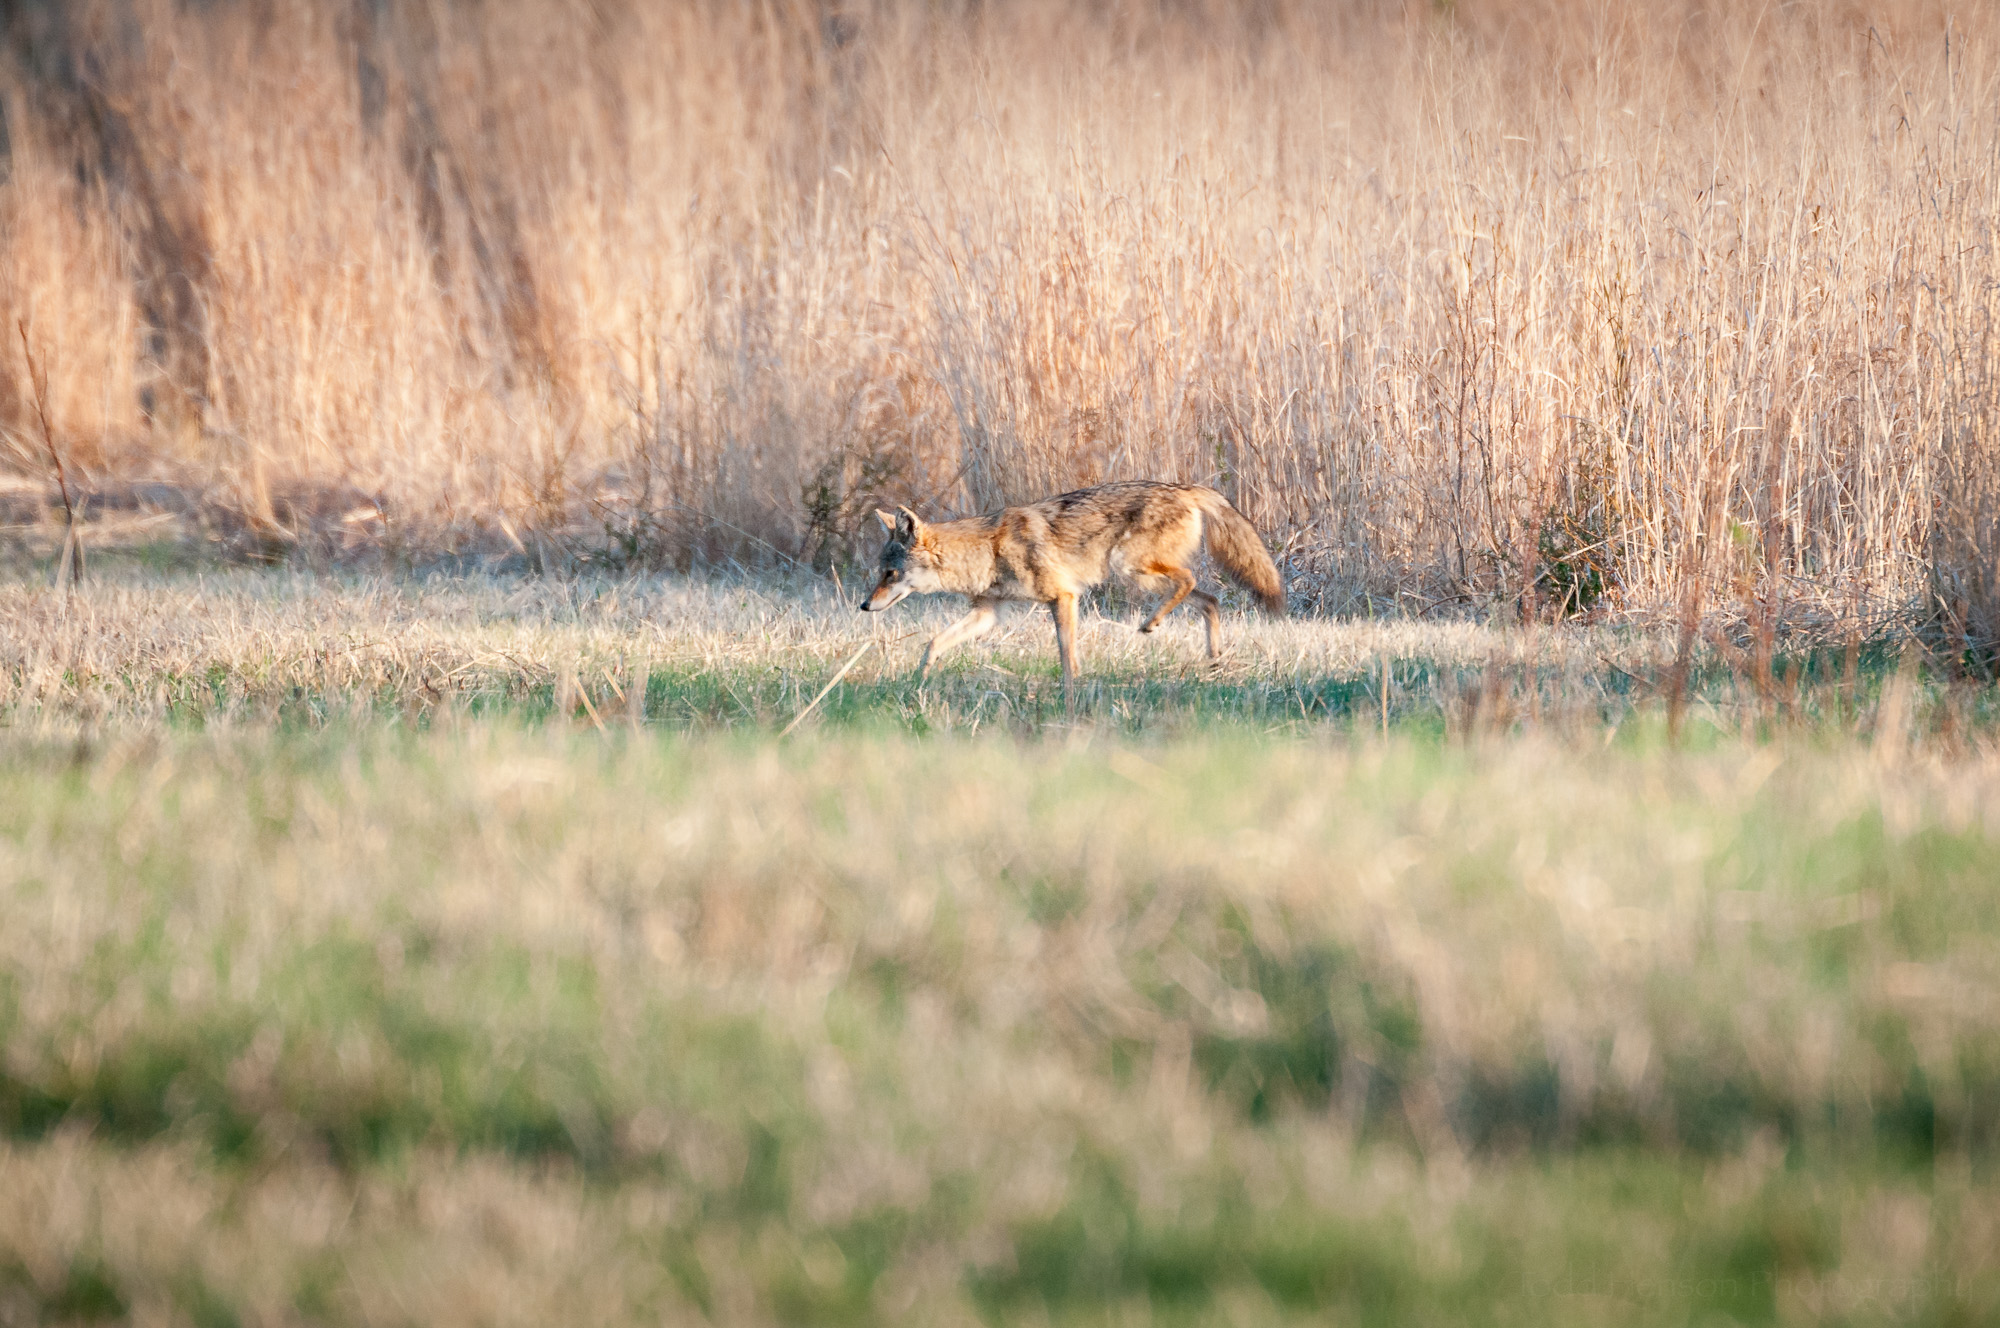 Coyote limping, notice the reddish patch on its rear leg